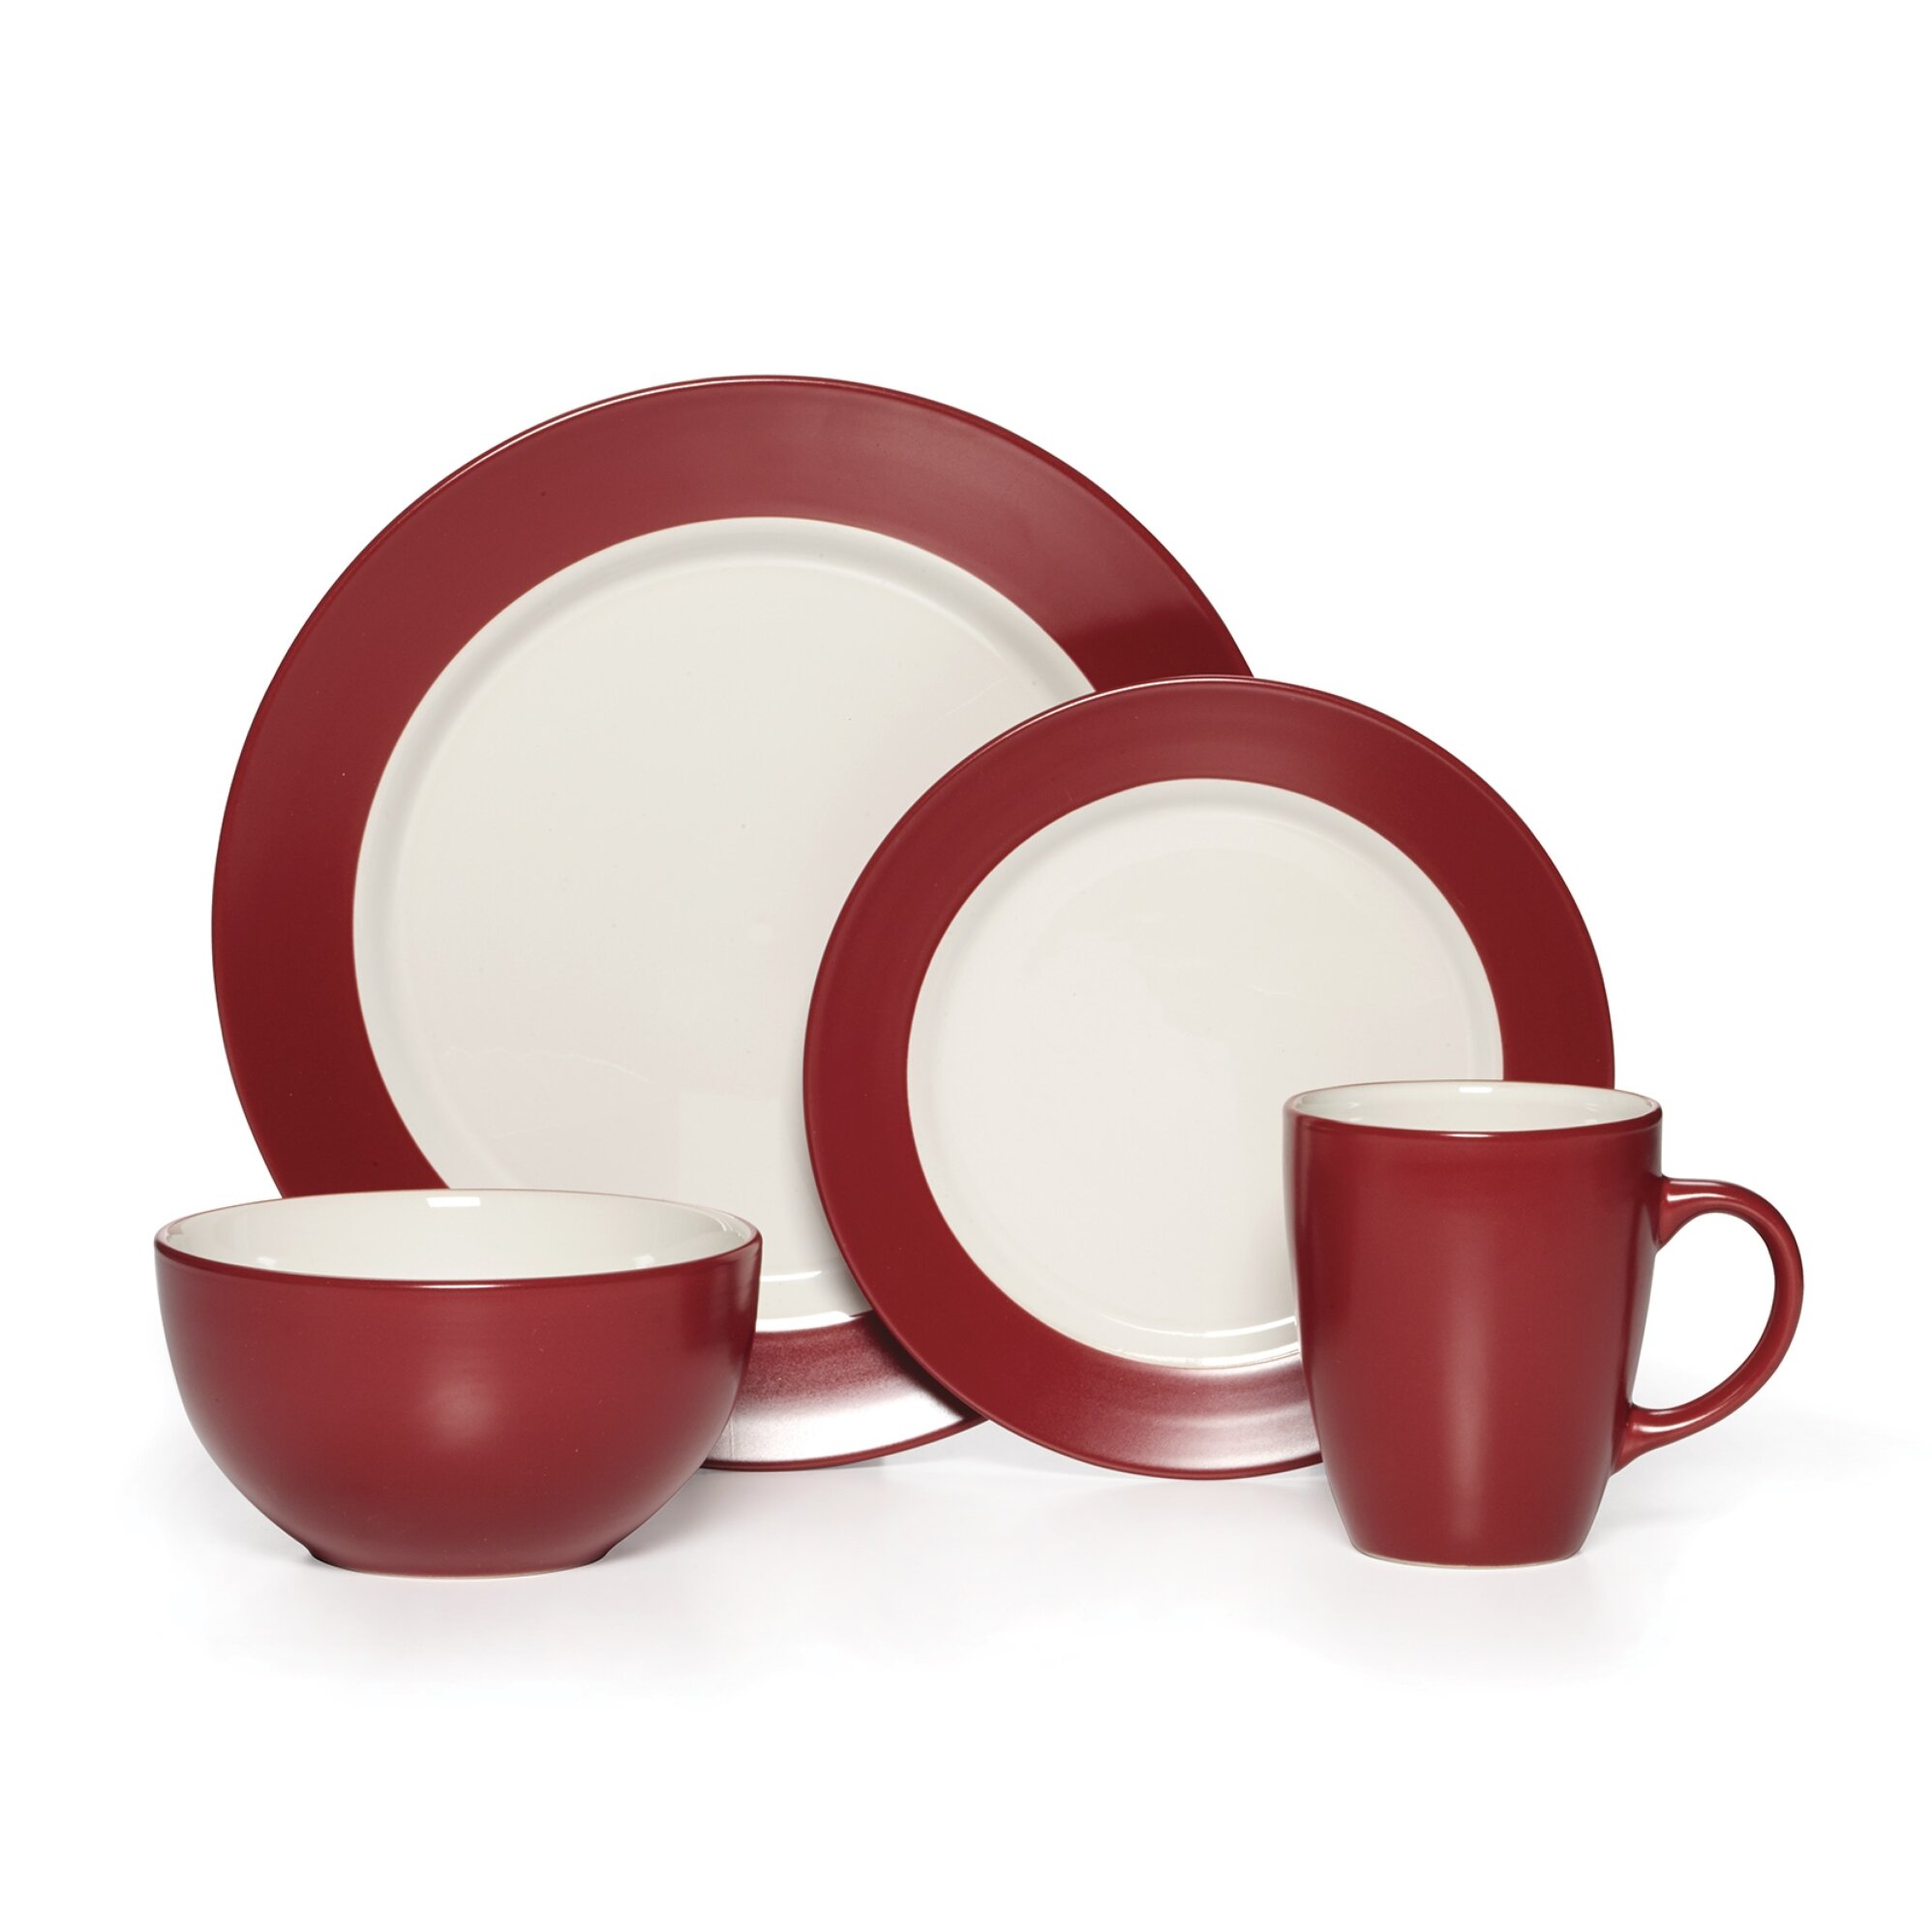 Pfaltzgraff Harmony Everyday 16 Piece Dinnerware Set